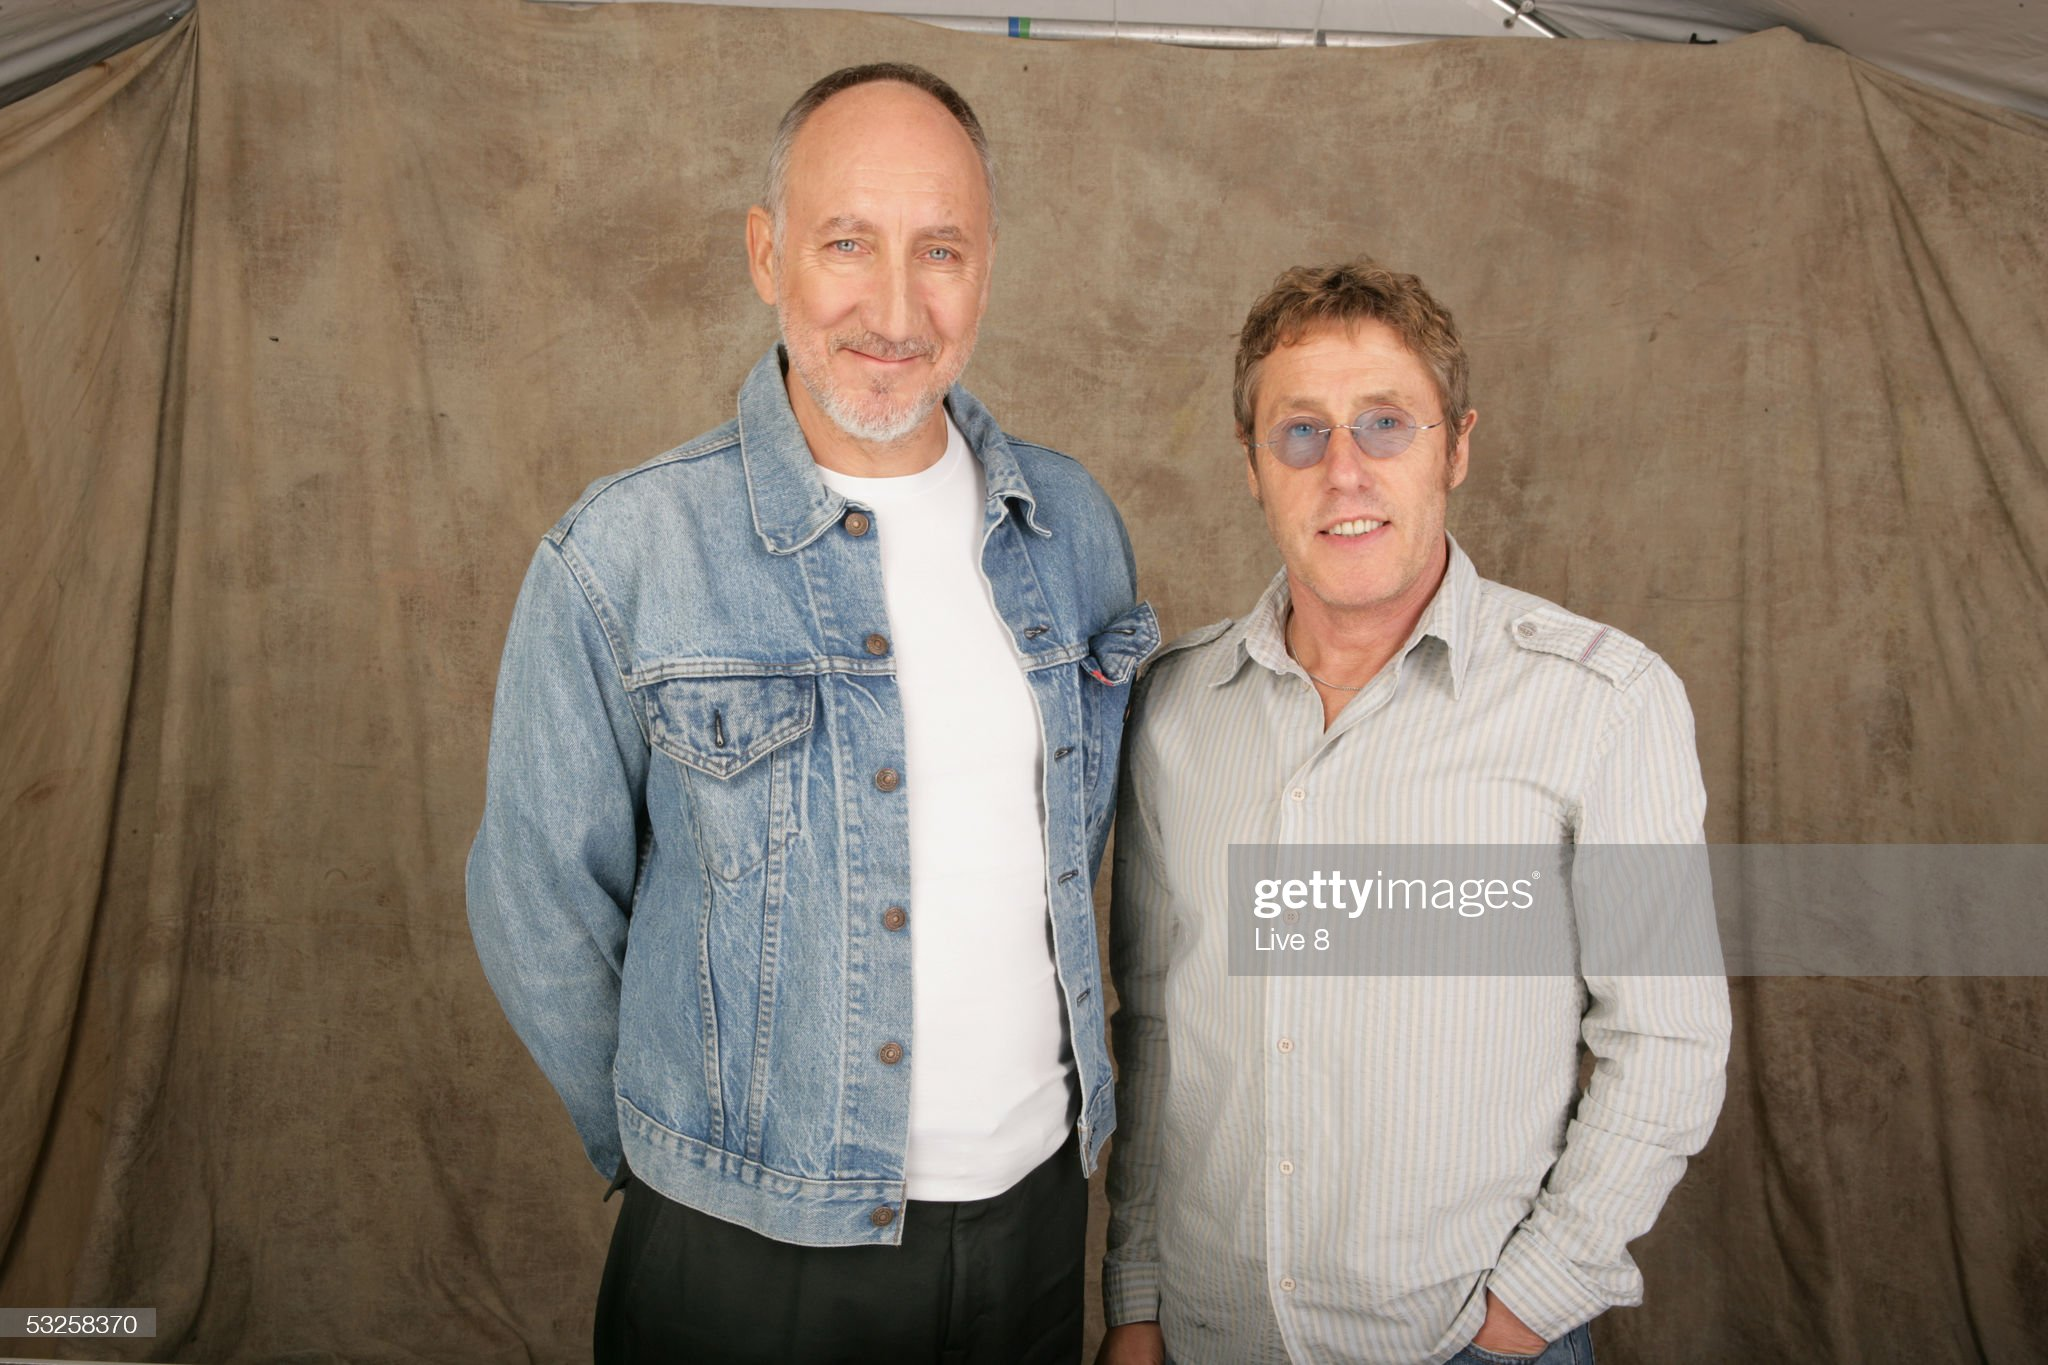 ¿Cuánto mide Roger Daltrey? - Altura - Real height Pete-townshend-and-roger-daltrey-pose-for-a-studio-portrait-backstage-picture-id53258370?s=2048x2048